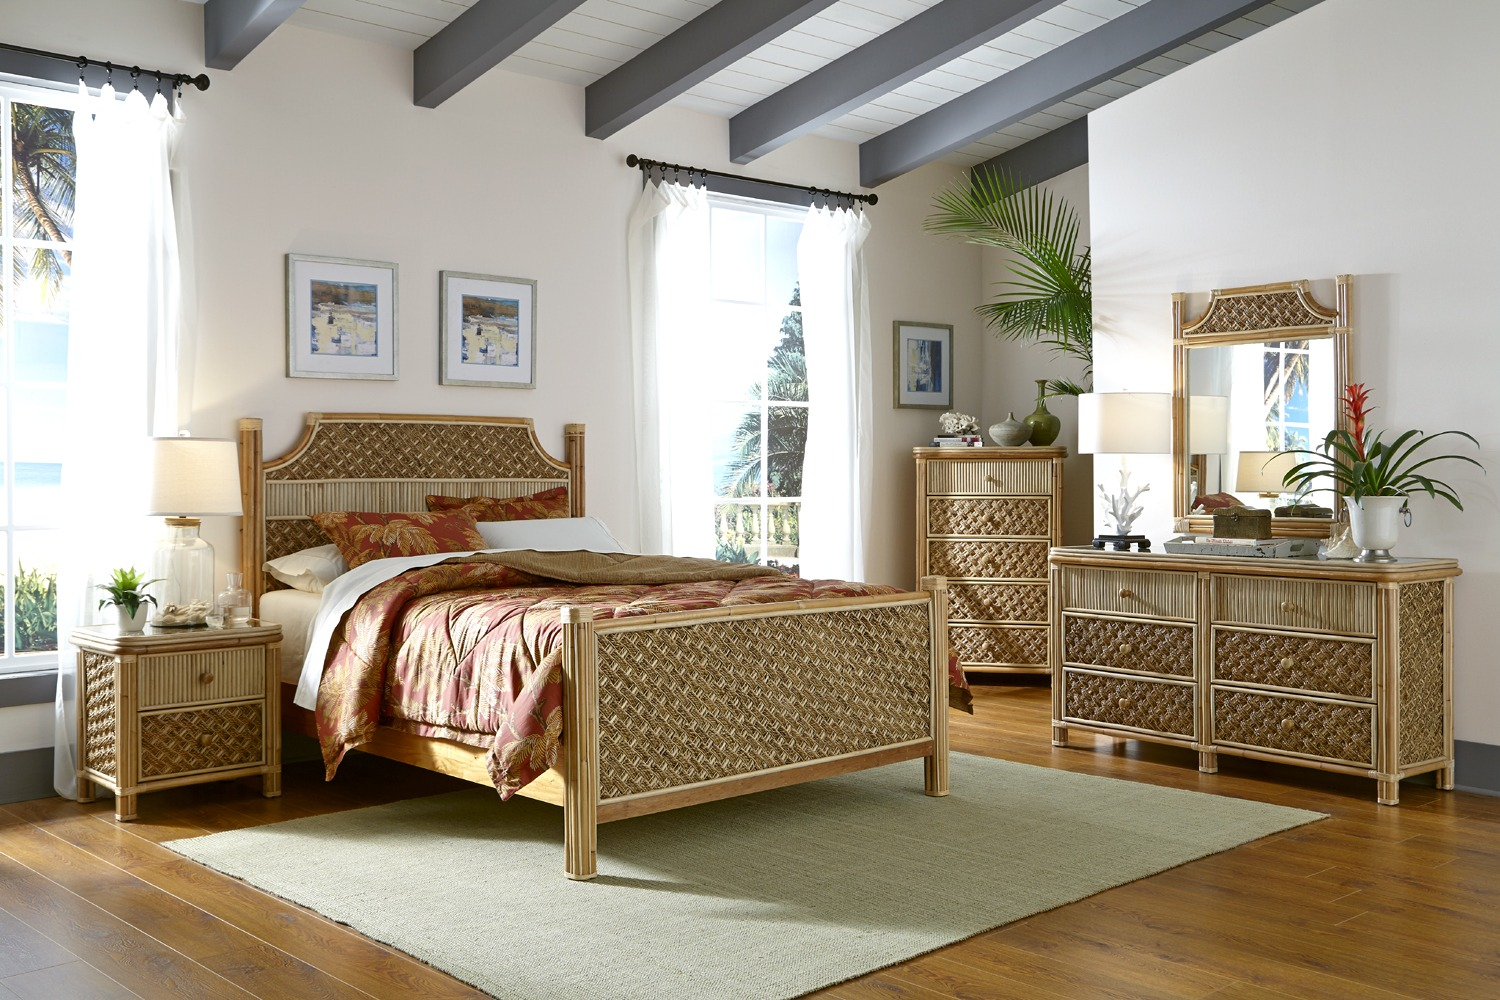 White Bedroom Ideas with Wicker Nightstand